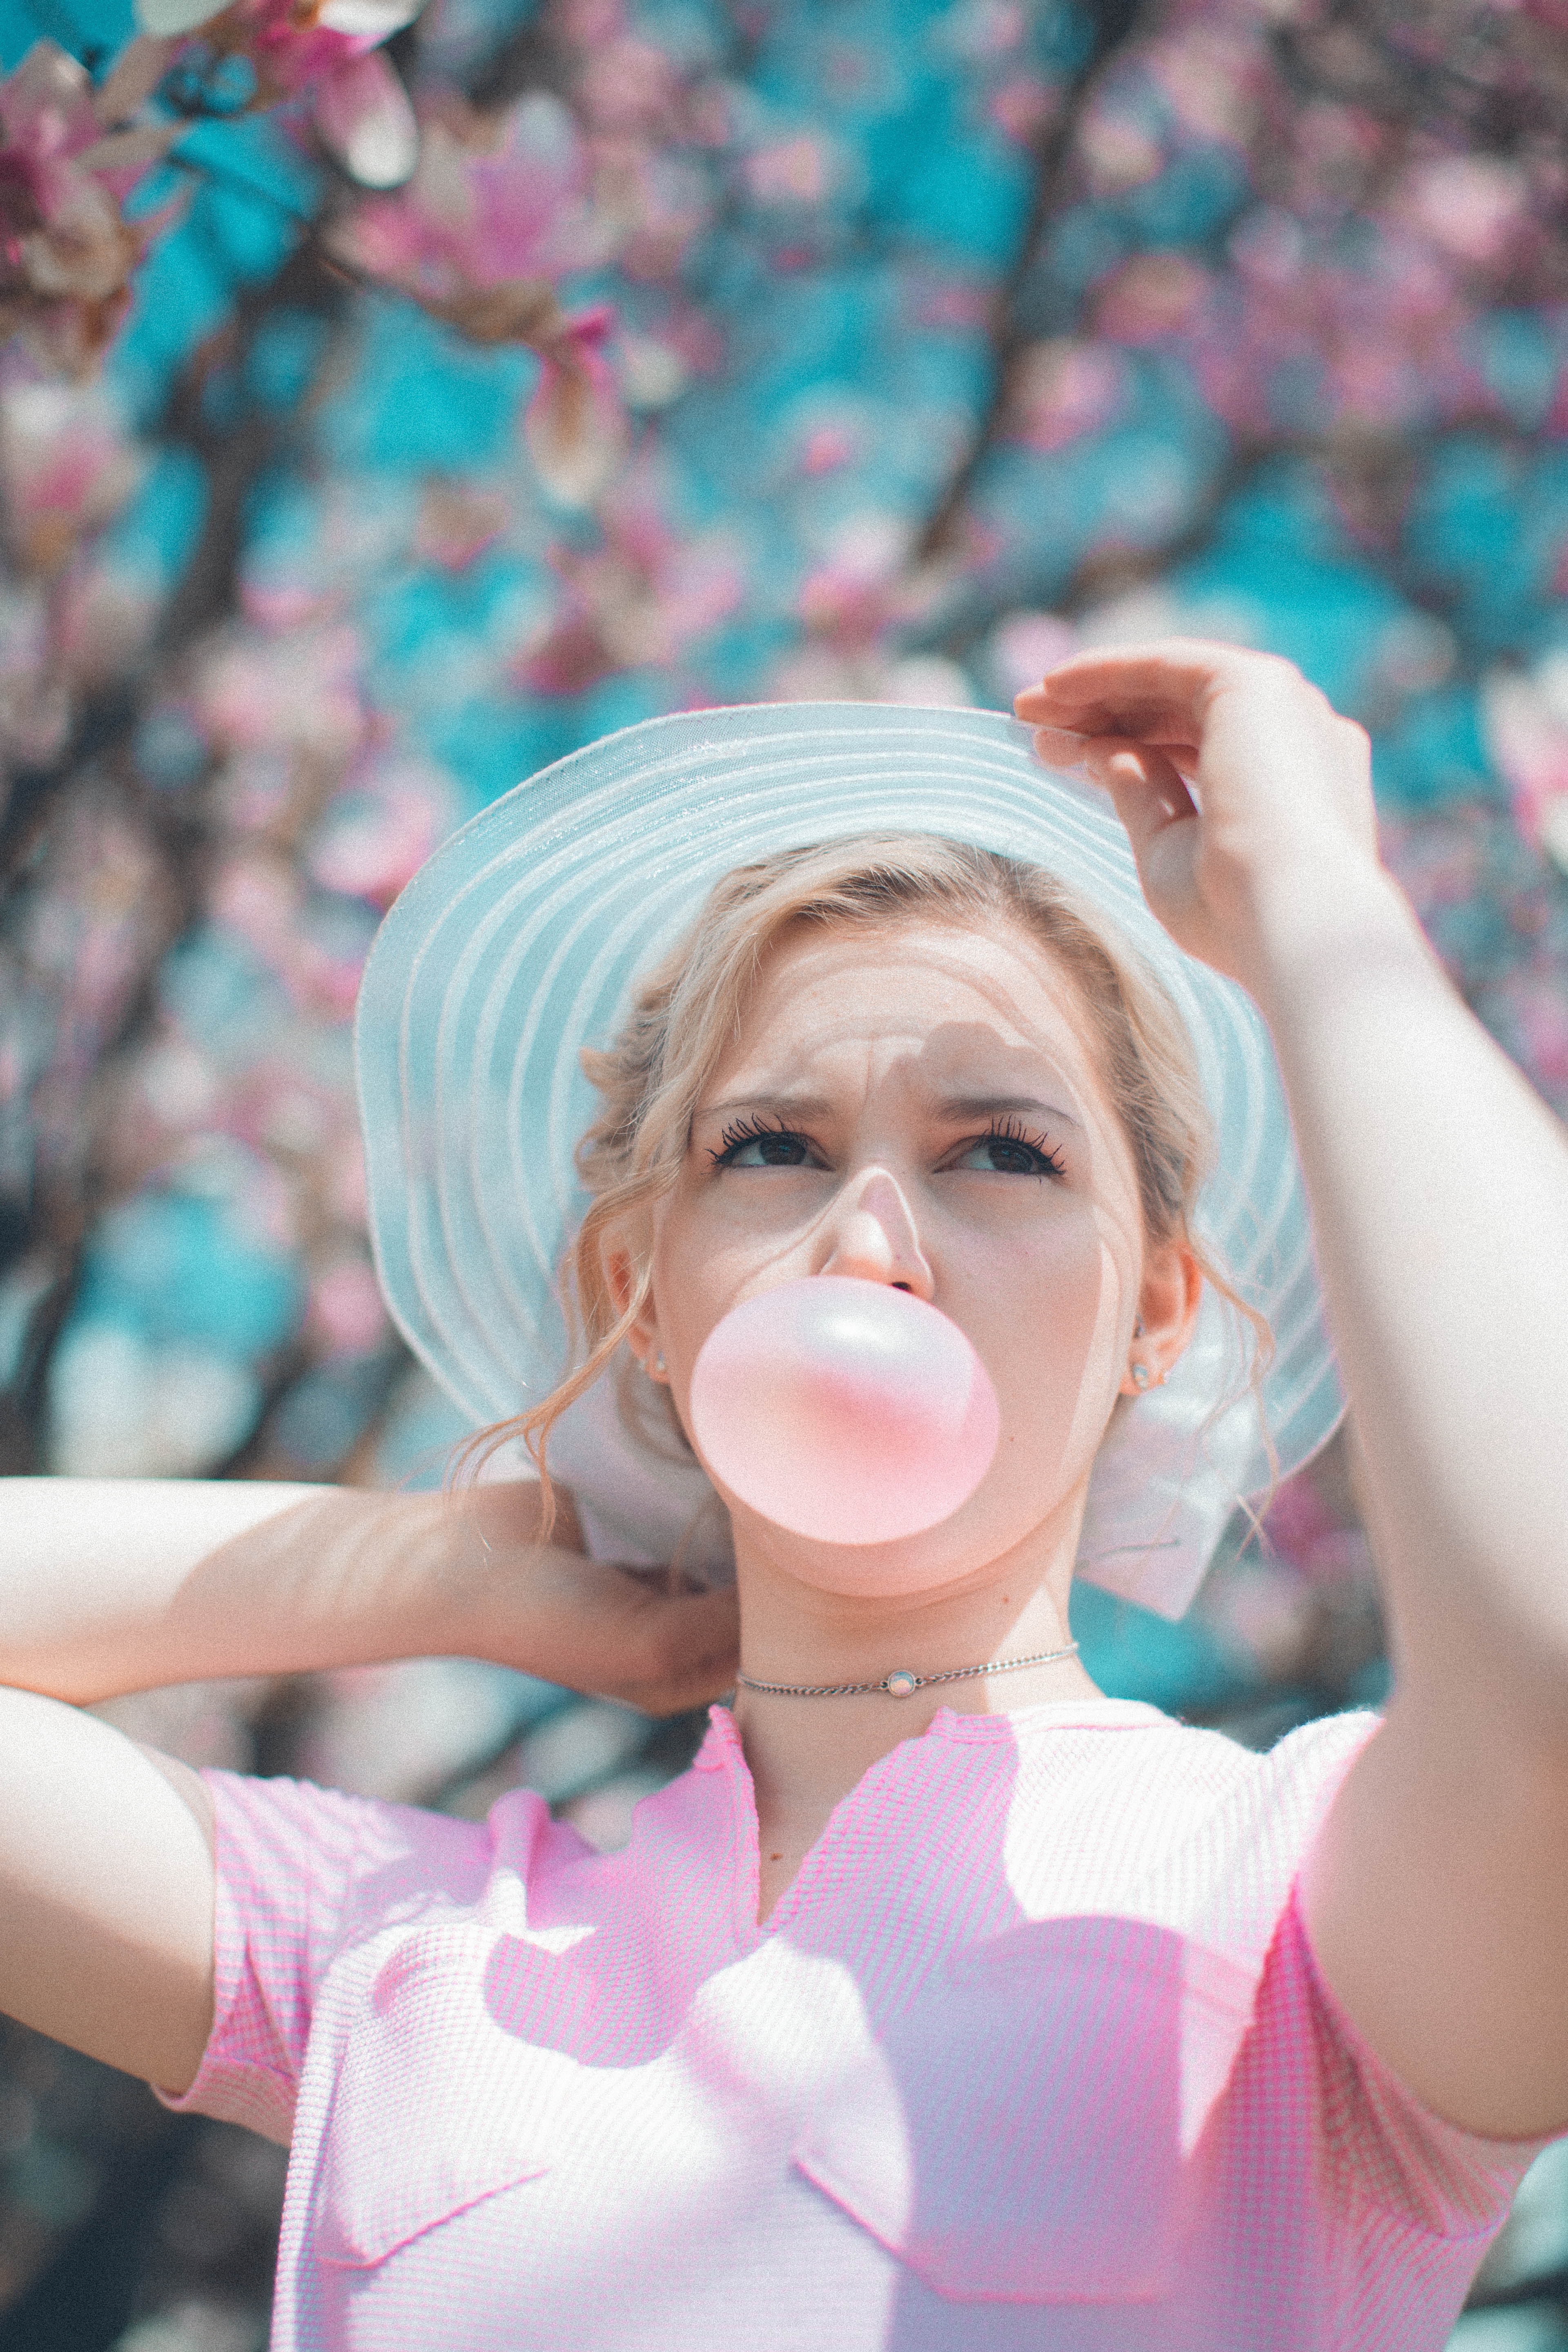 woman under pink tree blowing chewing gum